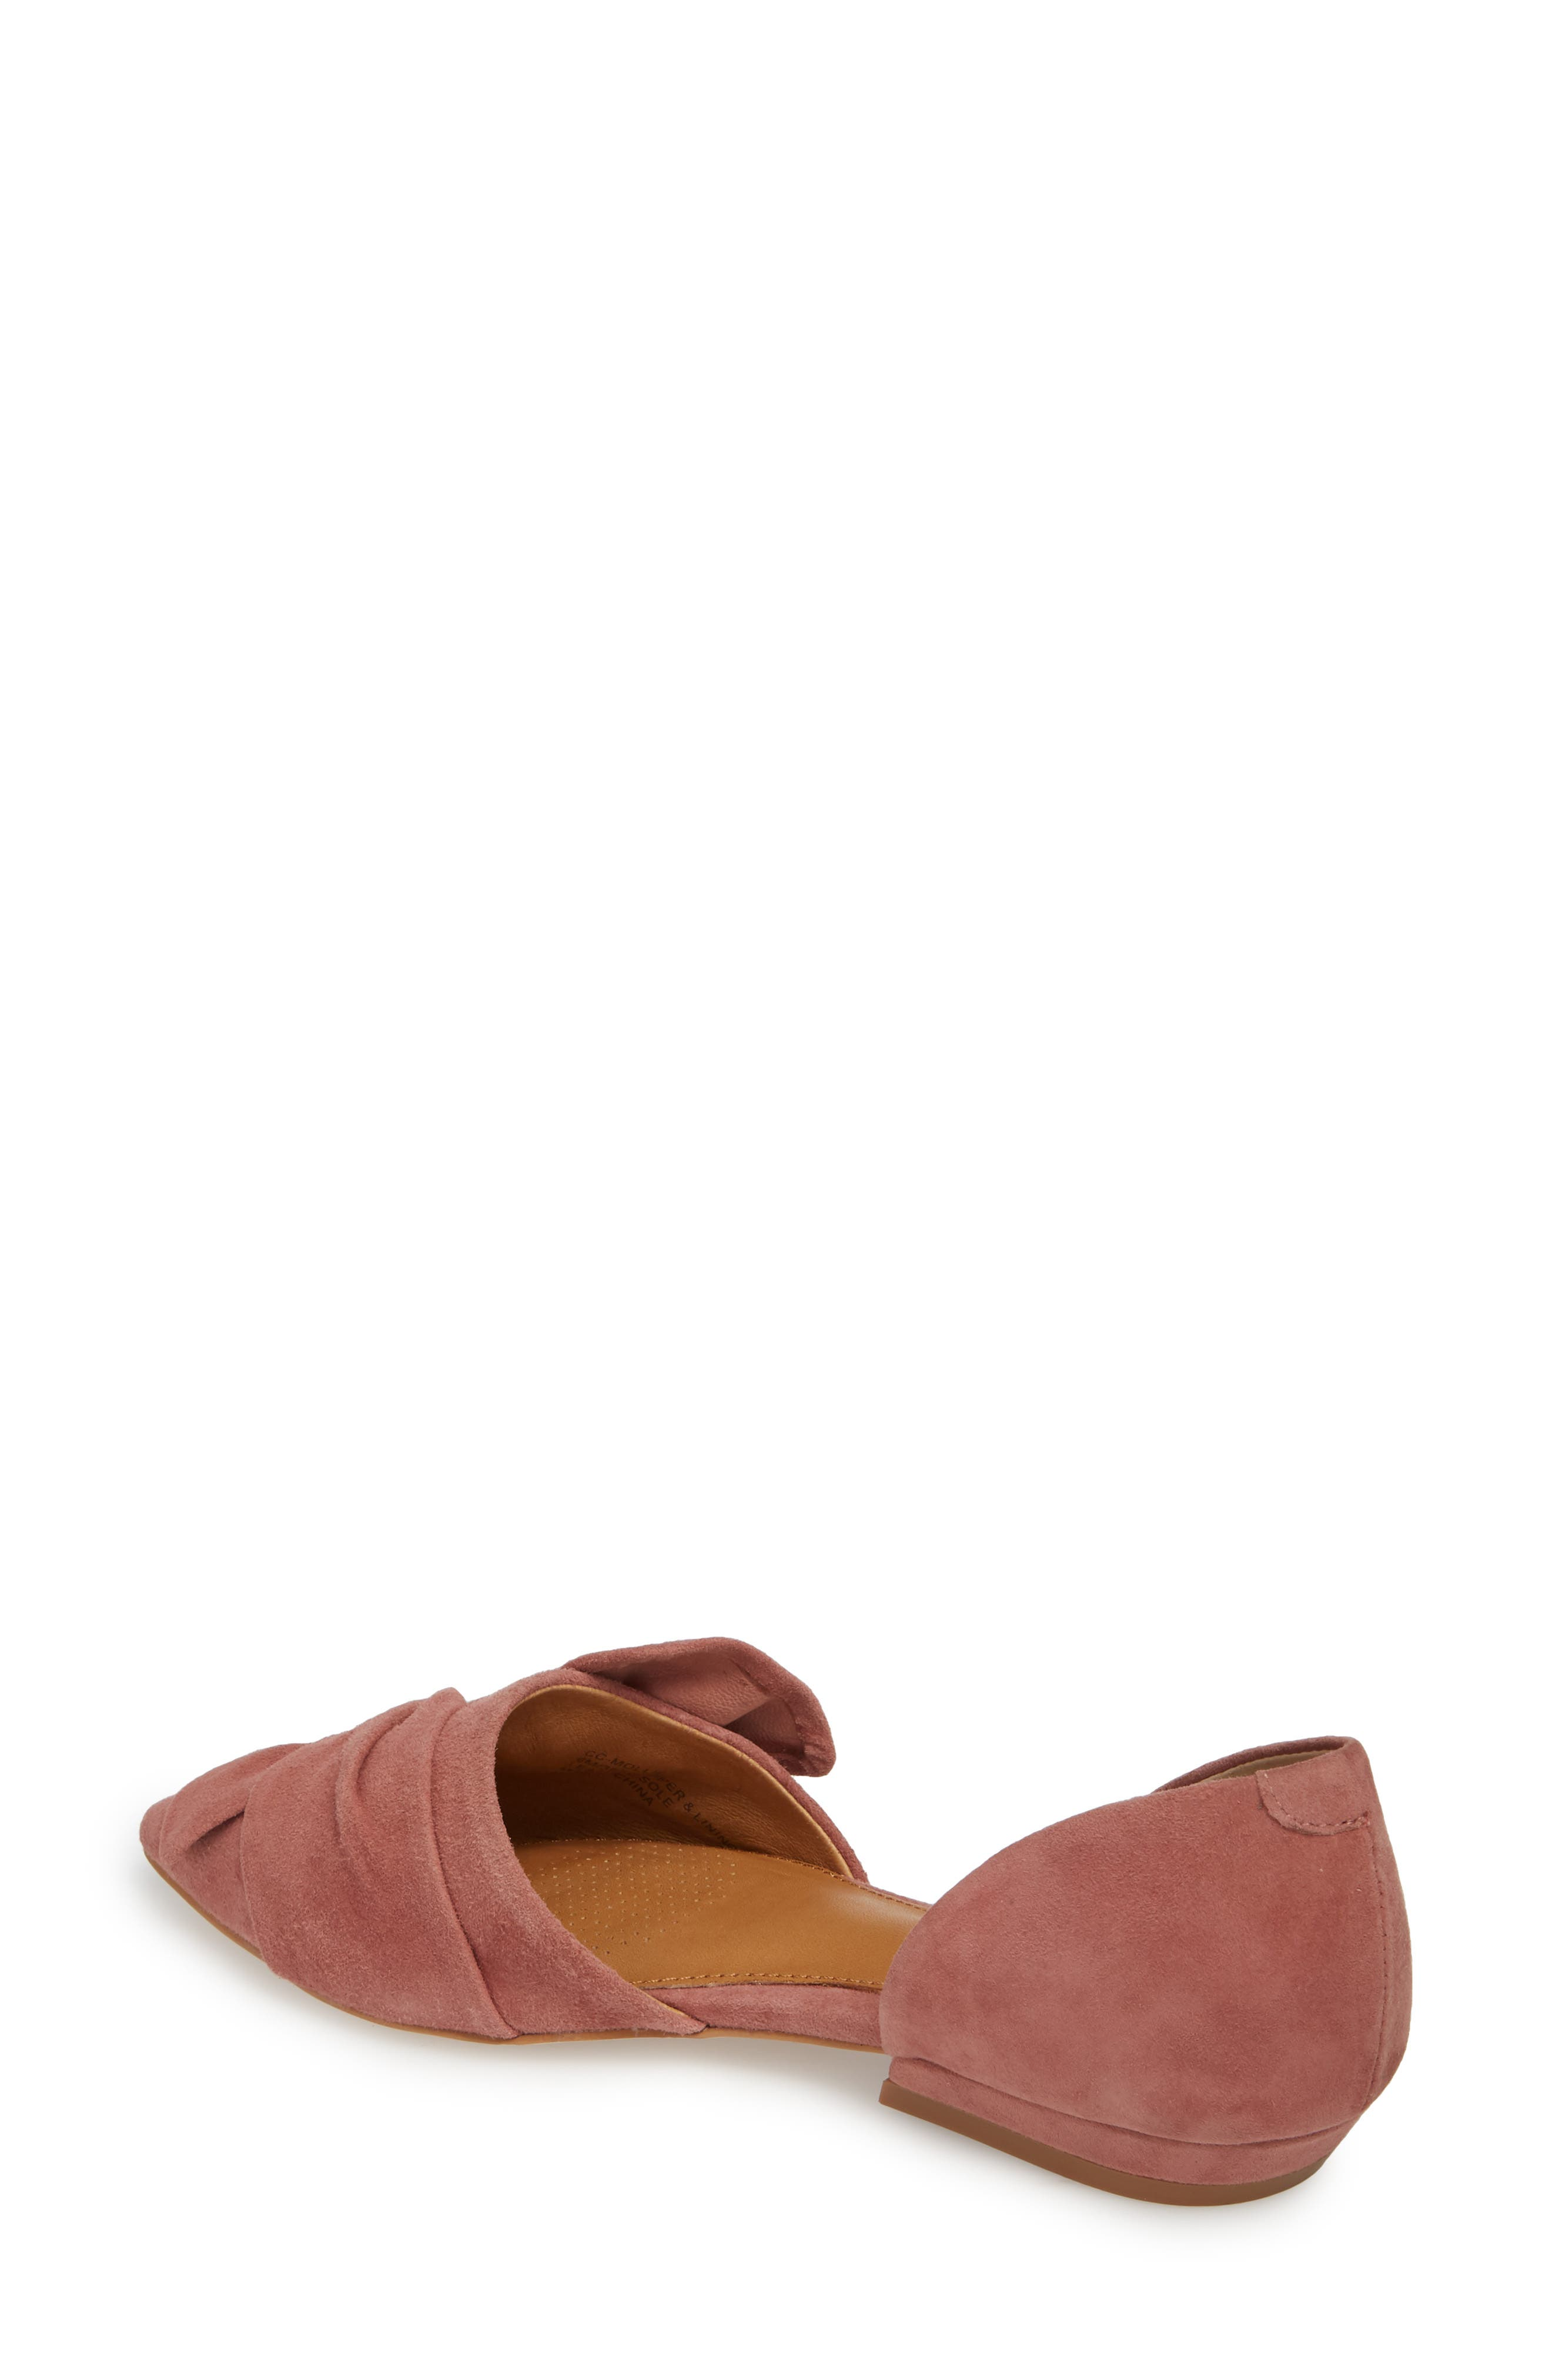 Mollie d'Orsay Flat,                             Alternate thumbnail 2, color,                             OLD ROSE SUEDE